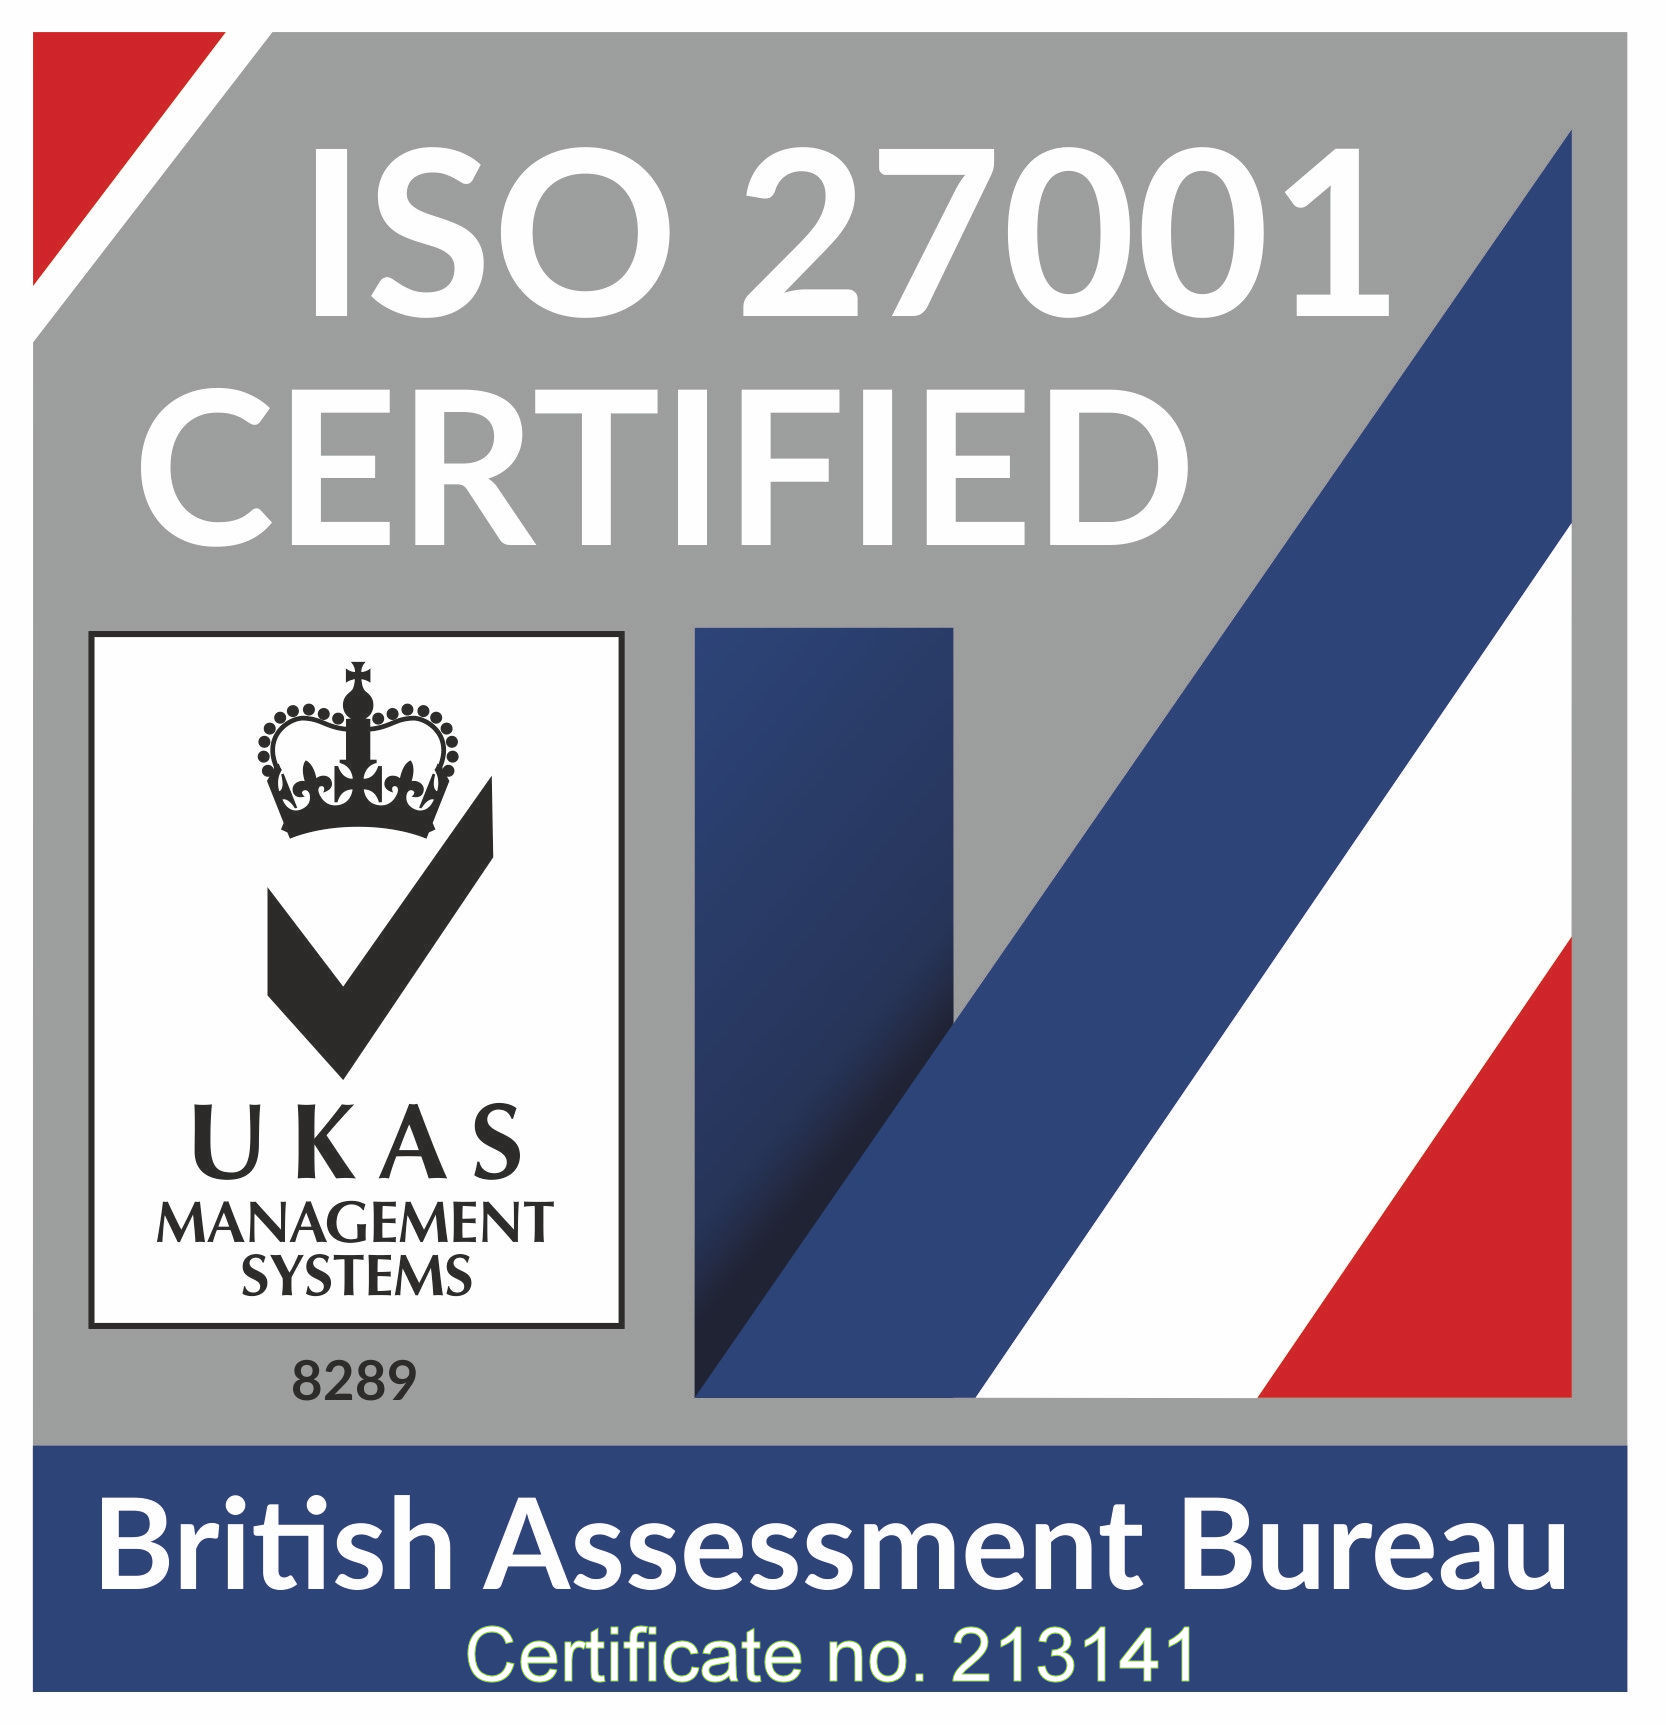 SARD JV are ISO 27001 certified by the British Assessment Bureau. Certificate no. 213141.